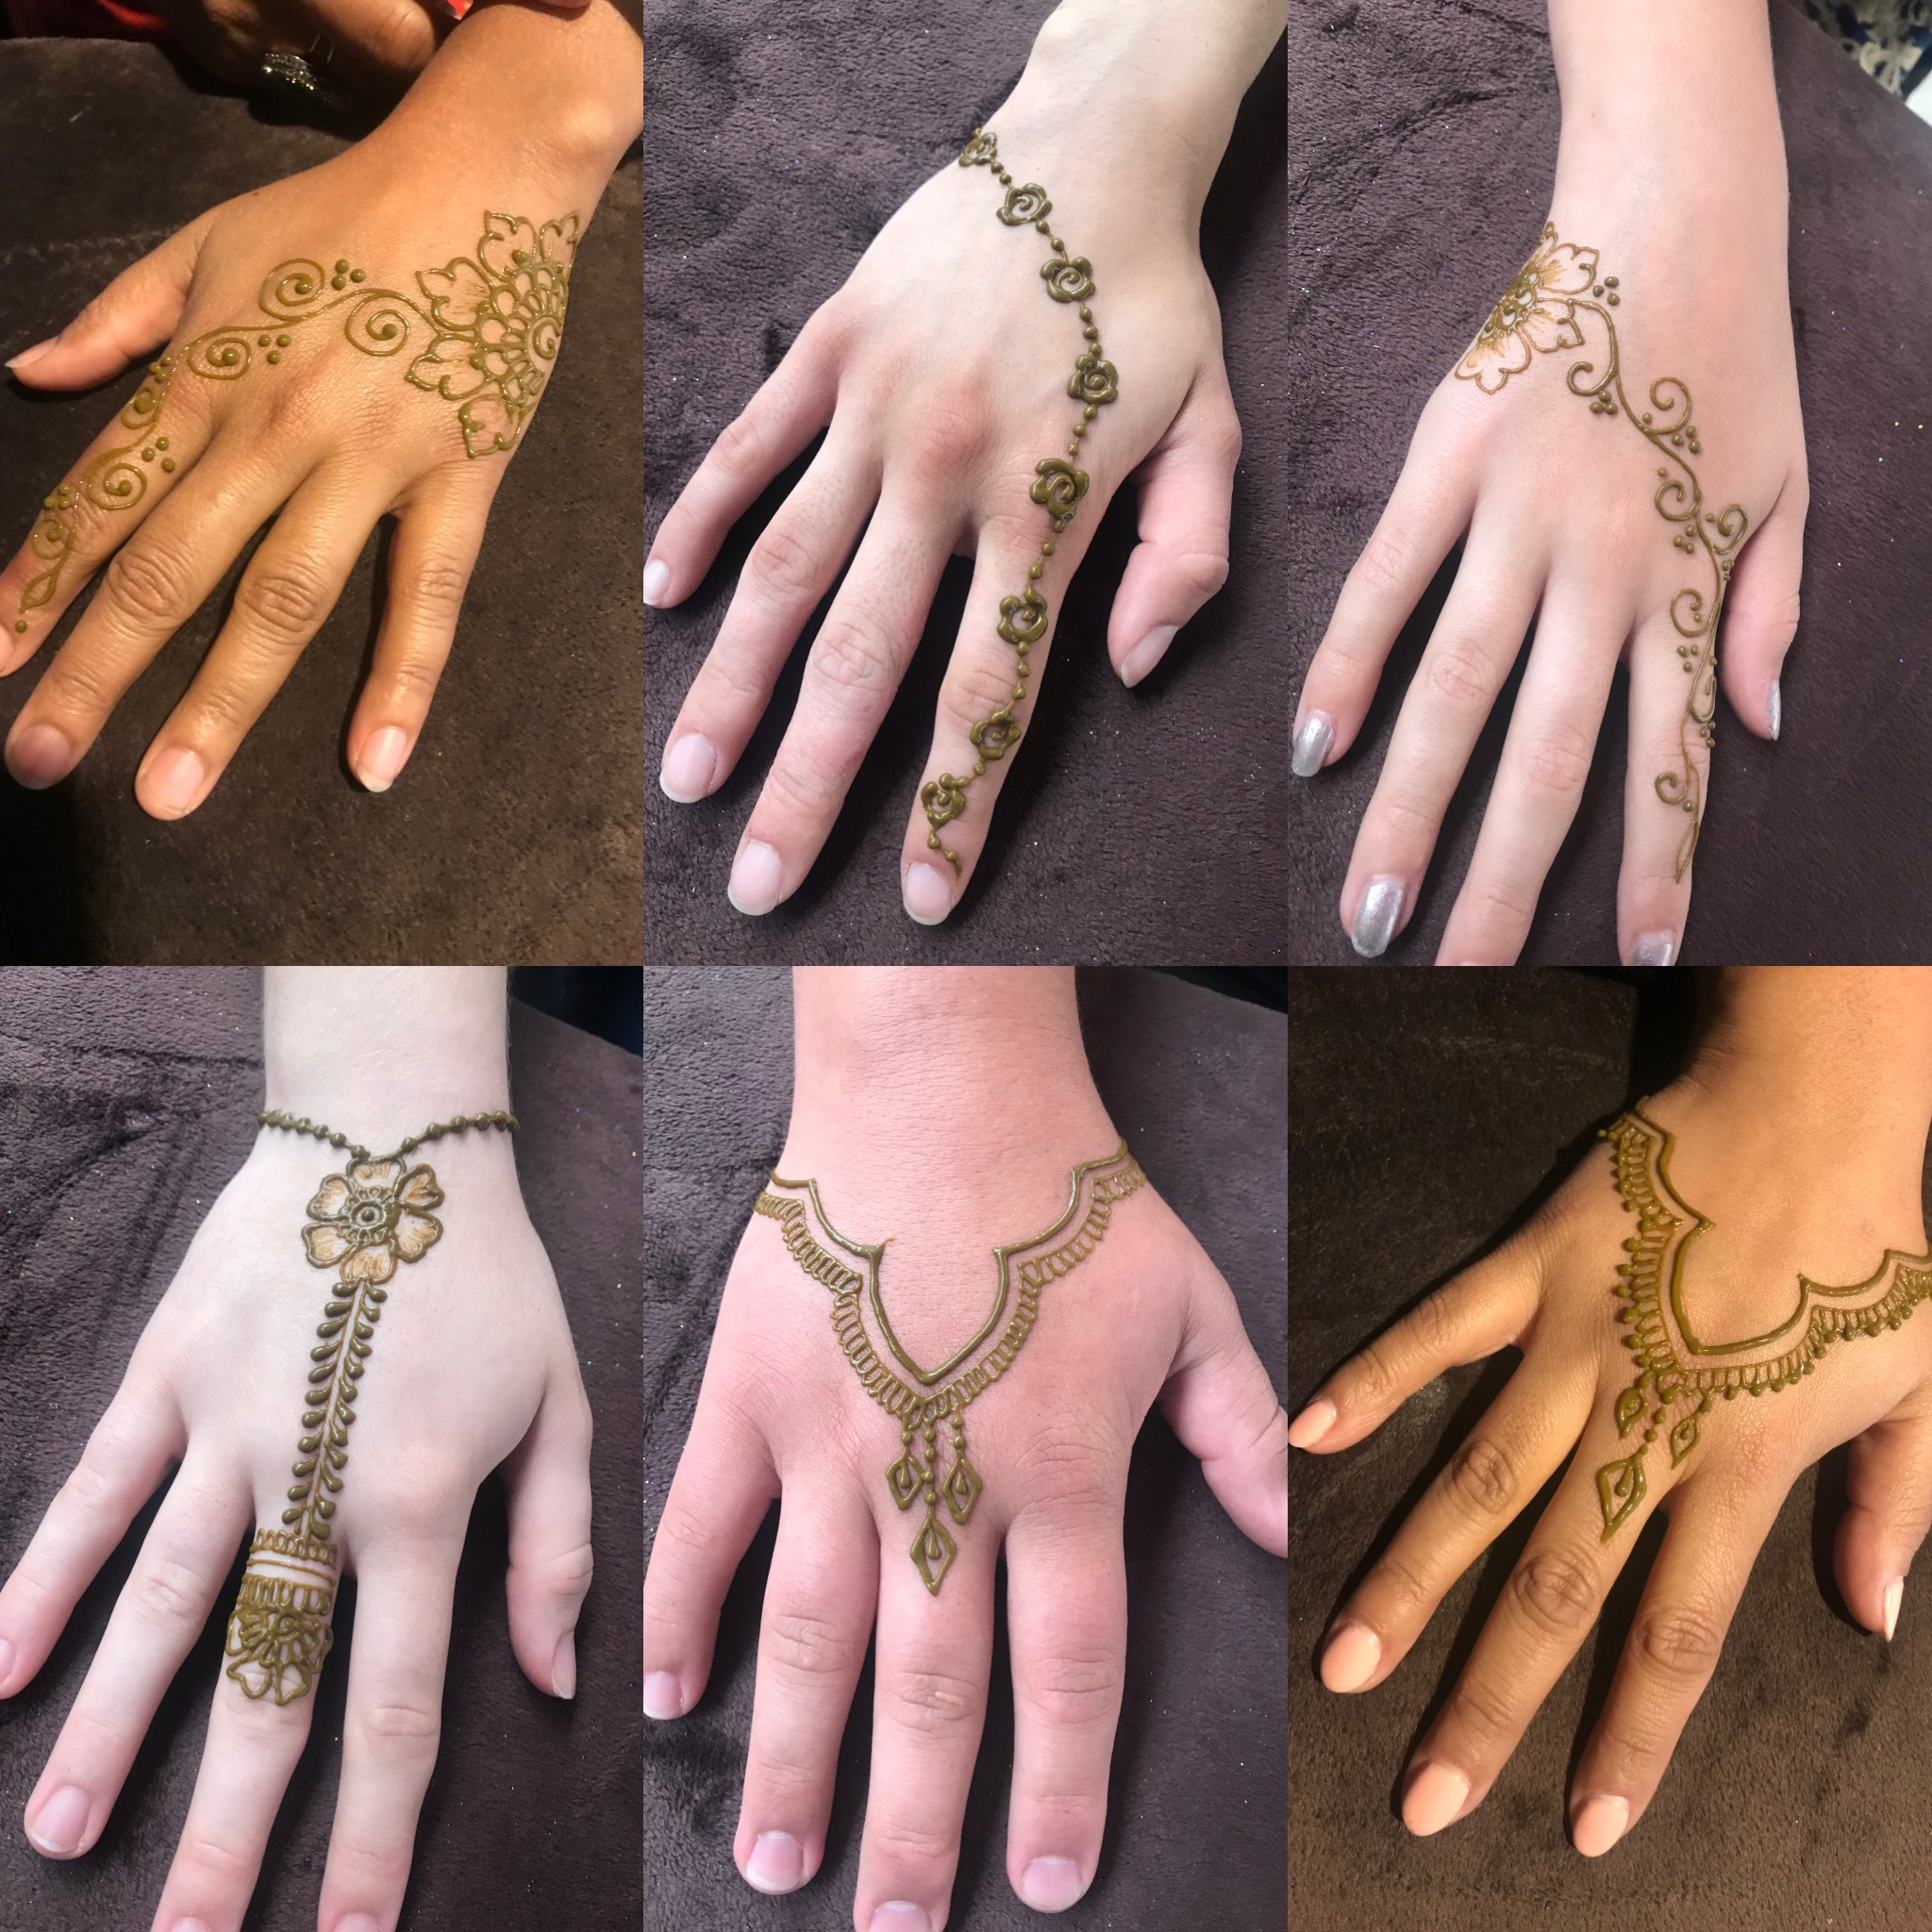 - Madiha brought custom designs specific to the needs of the party. At our Sweet 16 party, we had a lot of teenagers and I had asked her to put together some small but pretty designs to accomodate a large number of people. One interesting thing that happened was that one of the guests accidentally smeared her henna about 20 minutes after application. She thought it was ruined and didn't have a chance to get a new application from Madiha. I saw her the next day and the design was intact! The quality of henna that Madiha used was great. There was no pungent smell, the color took and was a nice reddish brown the following day and as I mentioned even with the occasional smear, the original design had taken hold on the skin soon after application. I would highly recommend Madiha and now I hope to have her at my events, at my home and just any time that my daughters and I feel like getting some nice henna done, we'll be reaching out to Unrivaled Henna! - Rani (5/11/18)